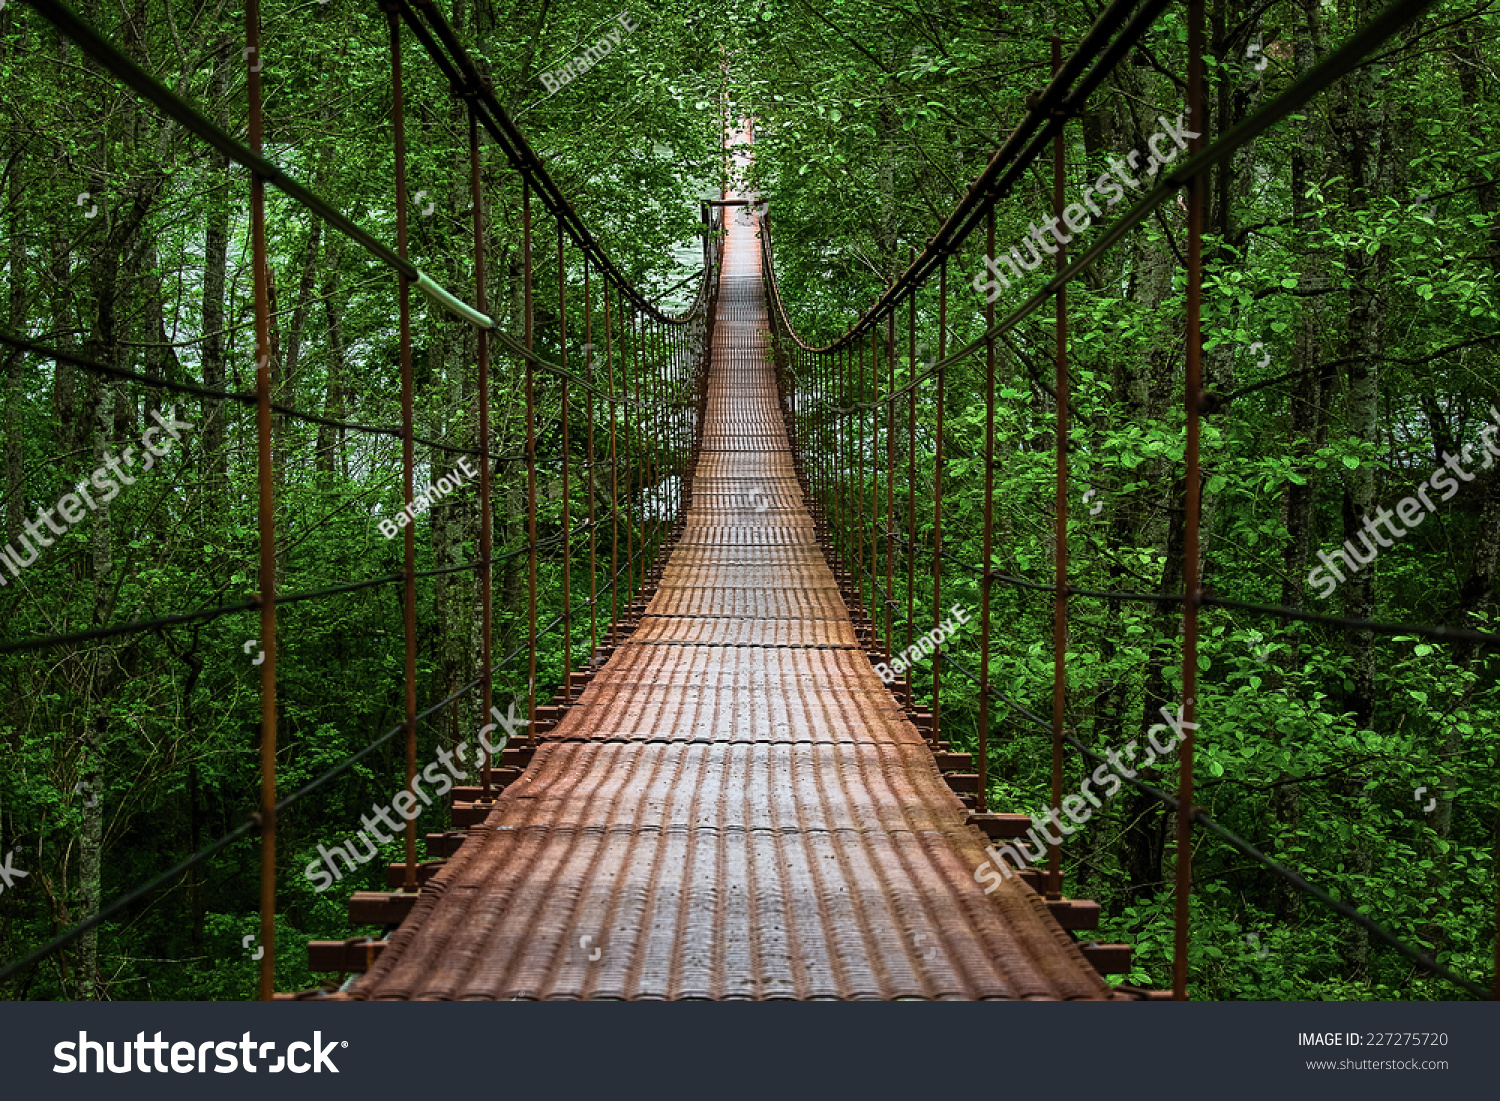 Suspension bridge, Crossing the river, ferriage in the woods #227275720